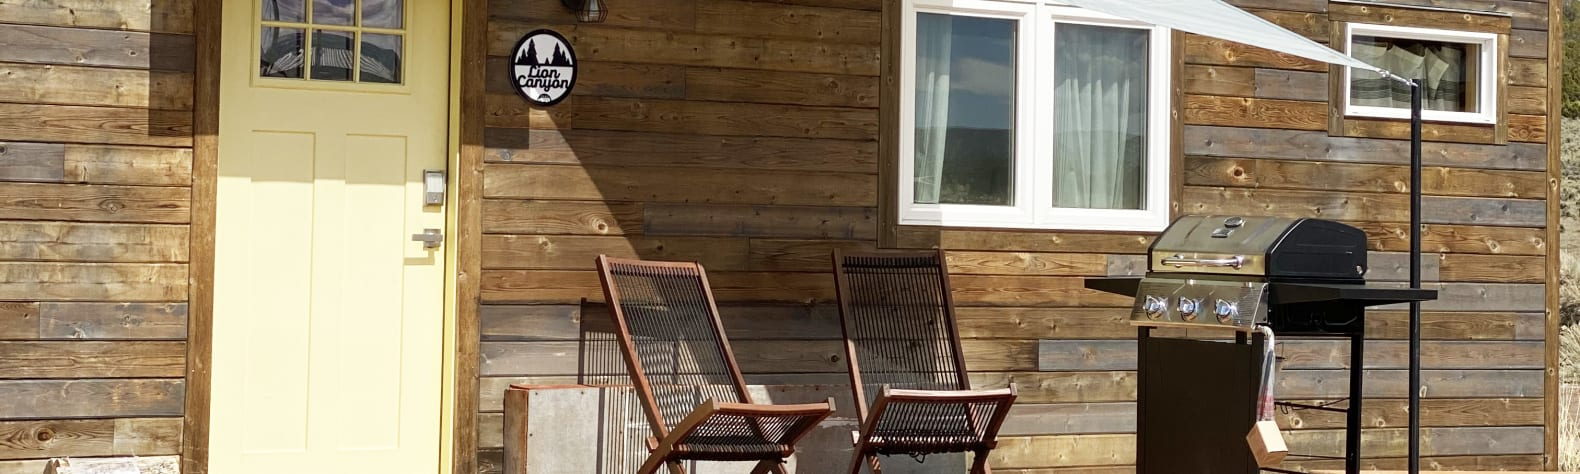 Trail and Hitch Tiny Home Hotel